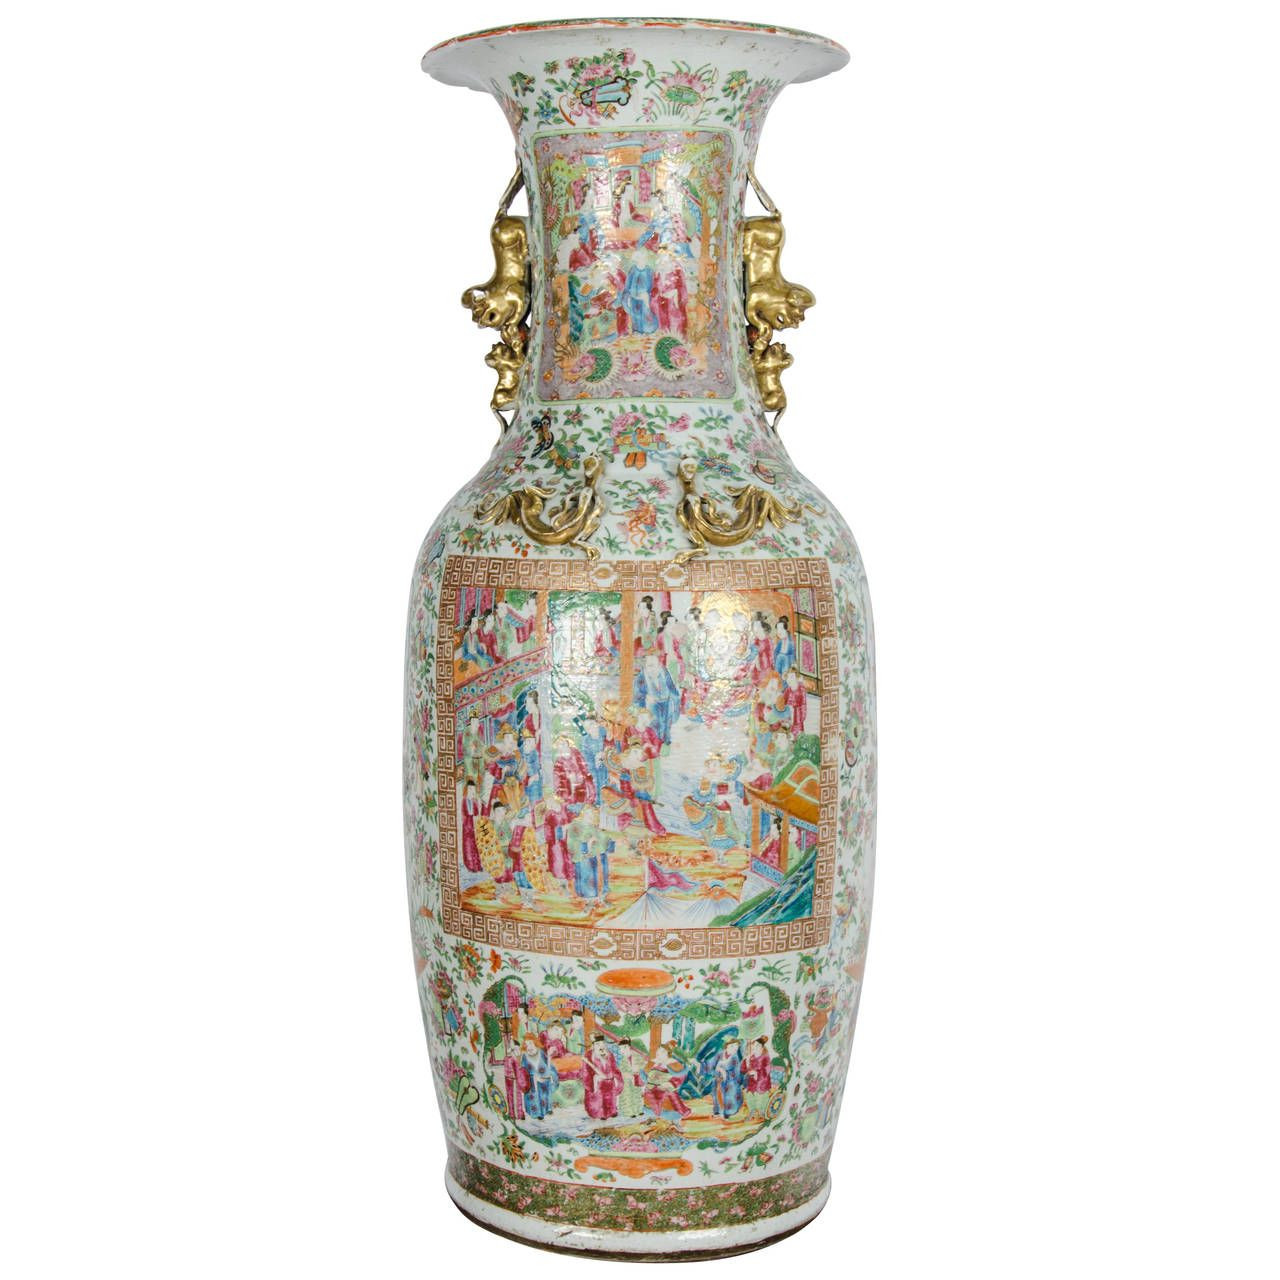 asian vase stand of large 19th century chinese rose medallion vase on stand pinterest with regard to large 19th century chinese rose medallion vase on stand 1stdibs com